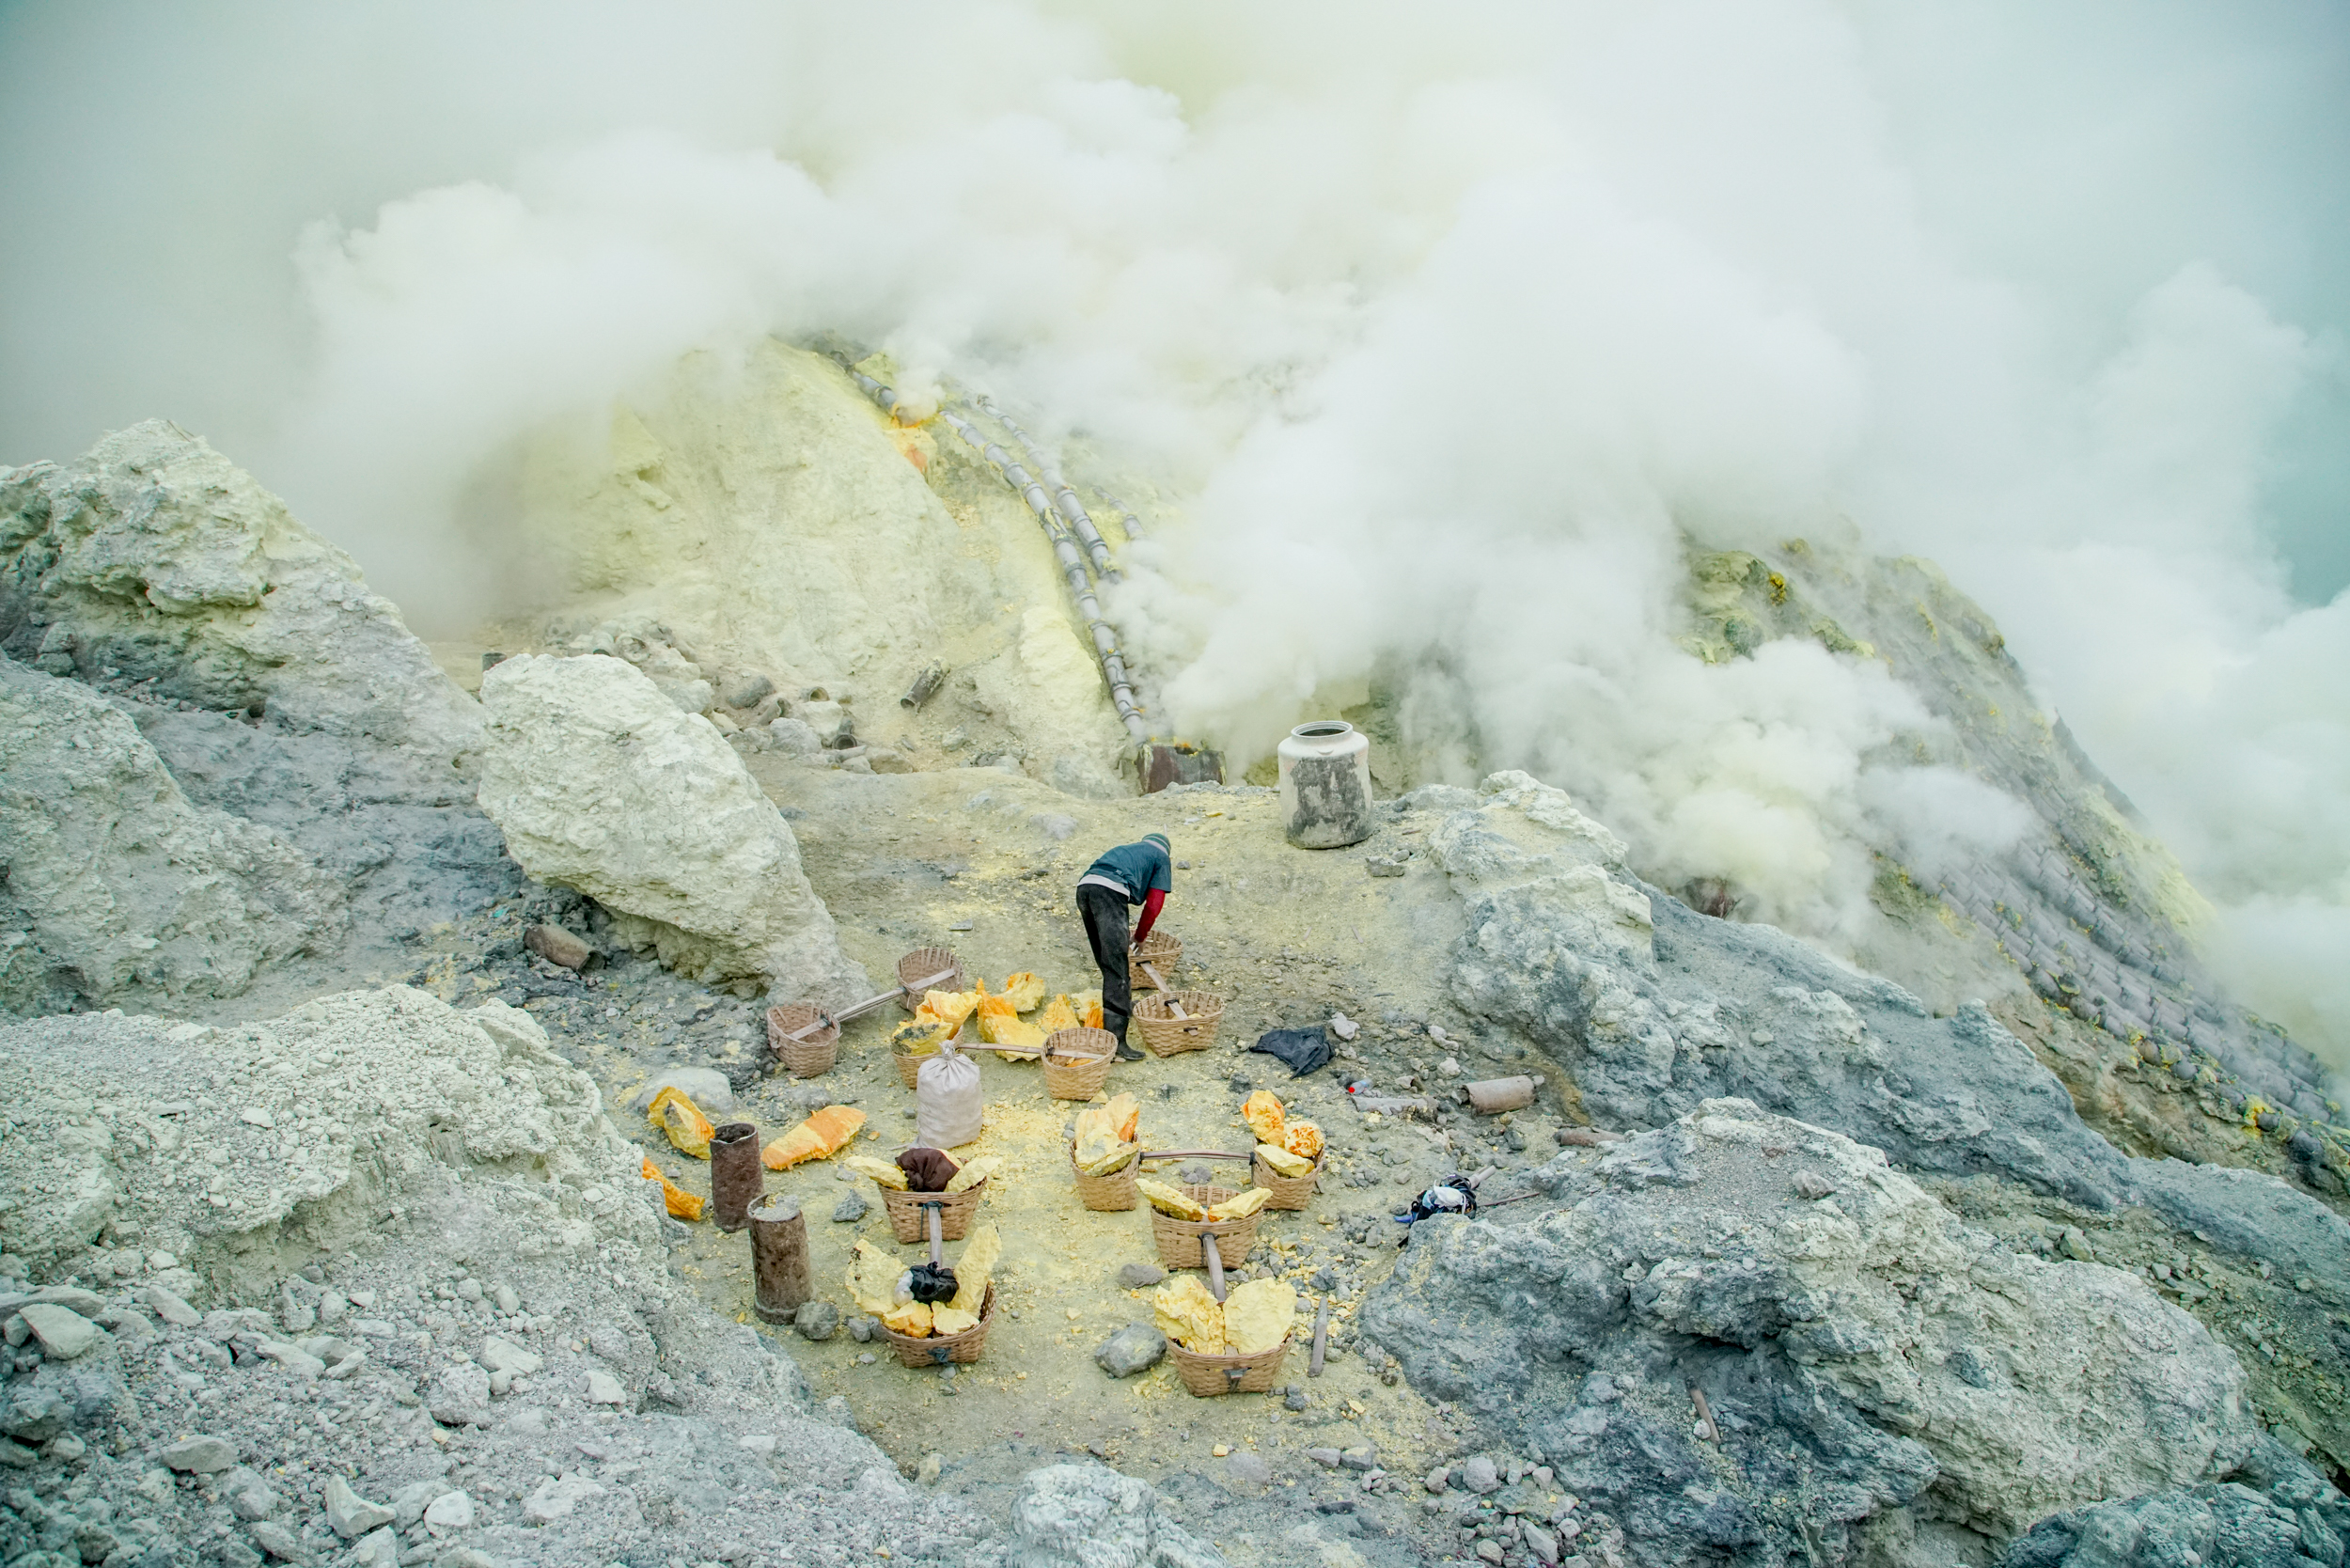 A miner organises his sulfur just after dawn in the crater of Kawah Ijen.